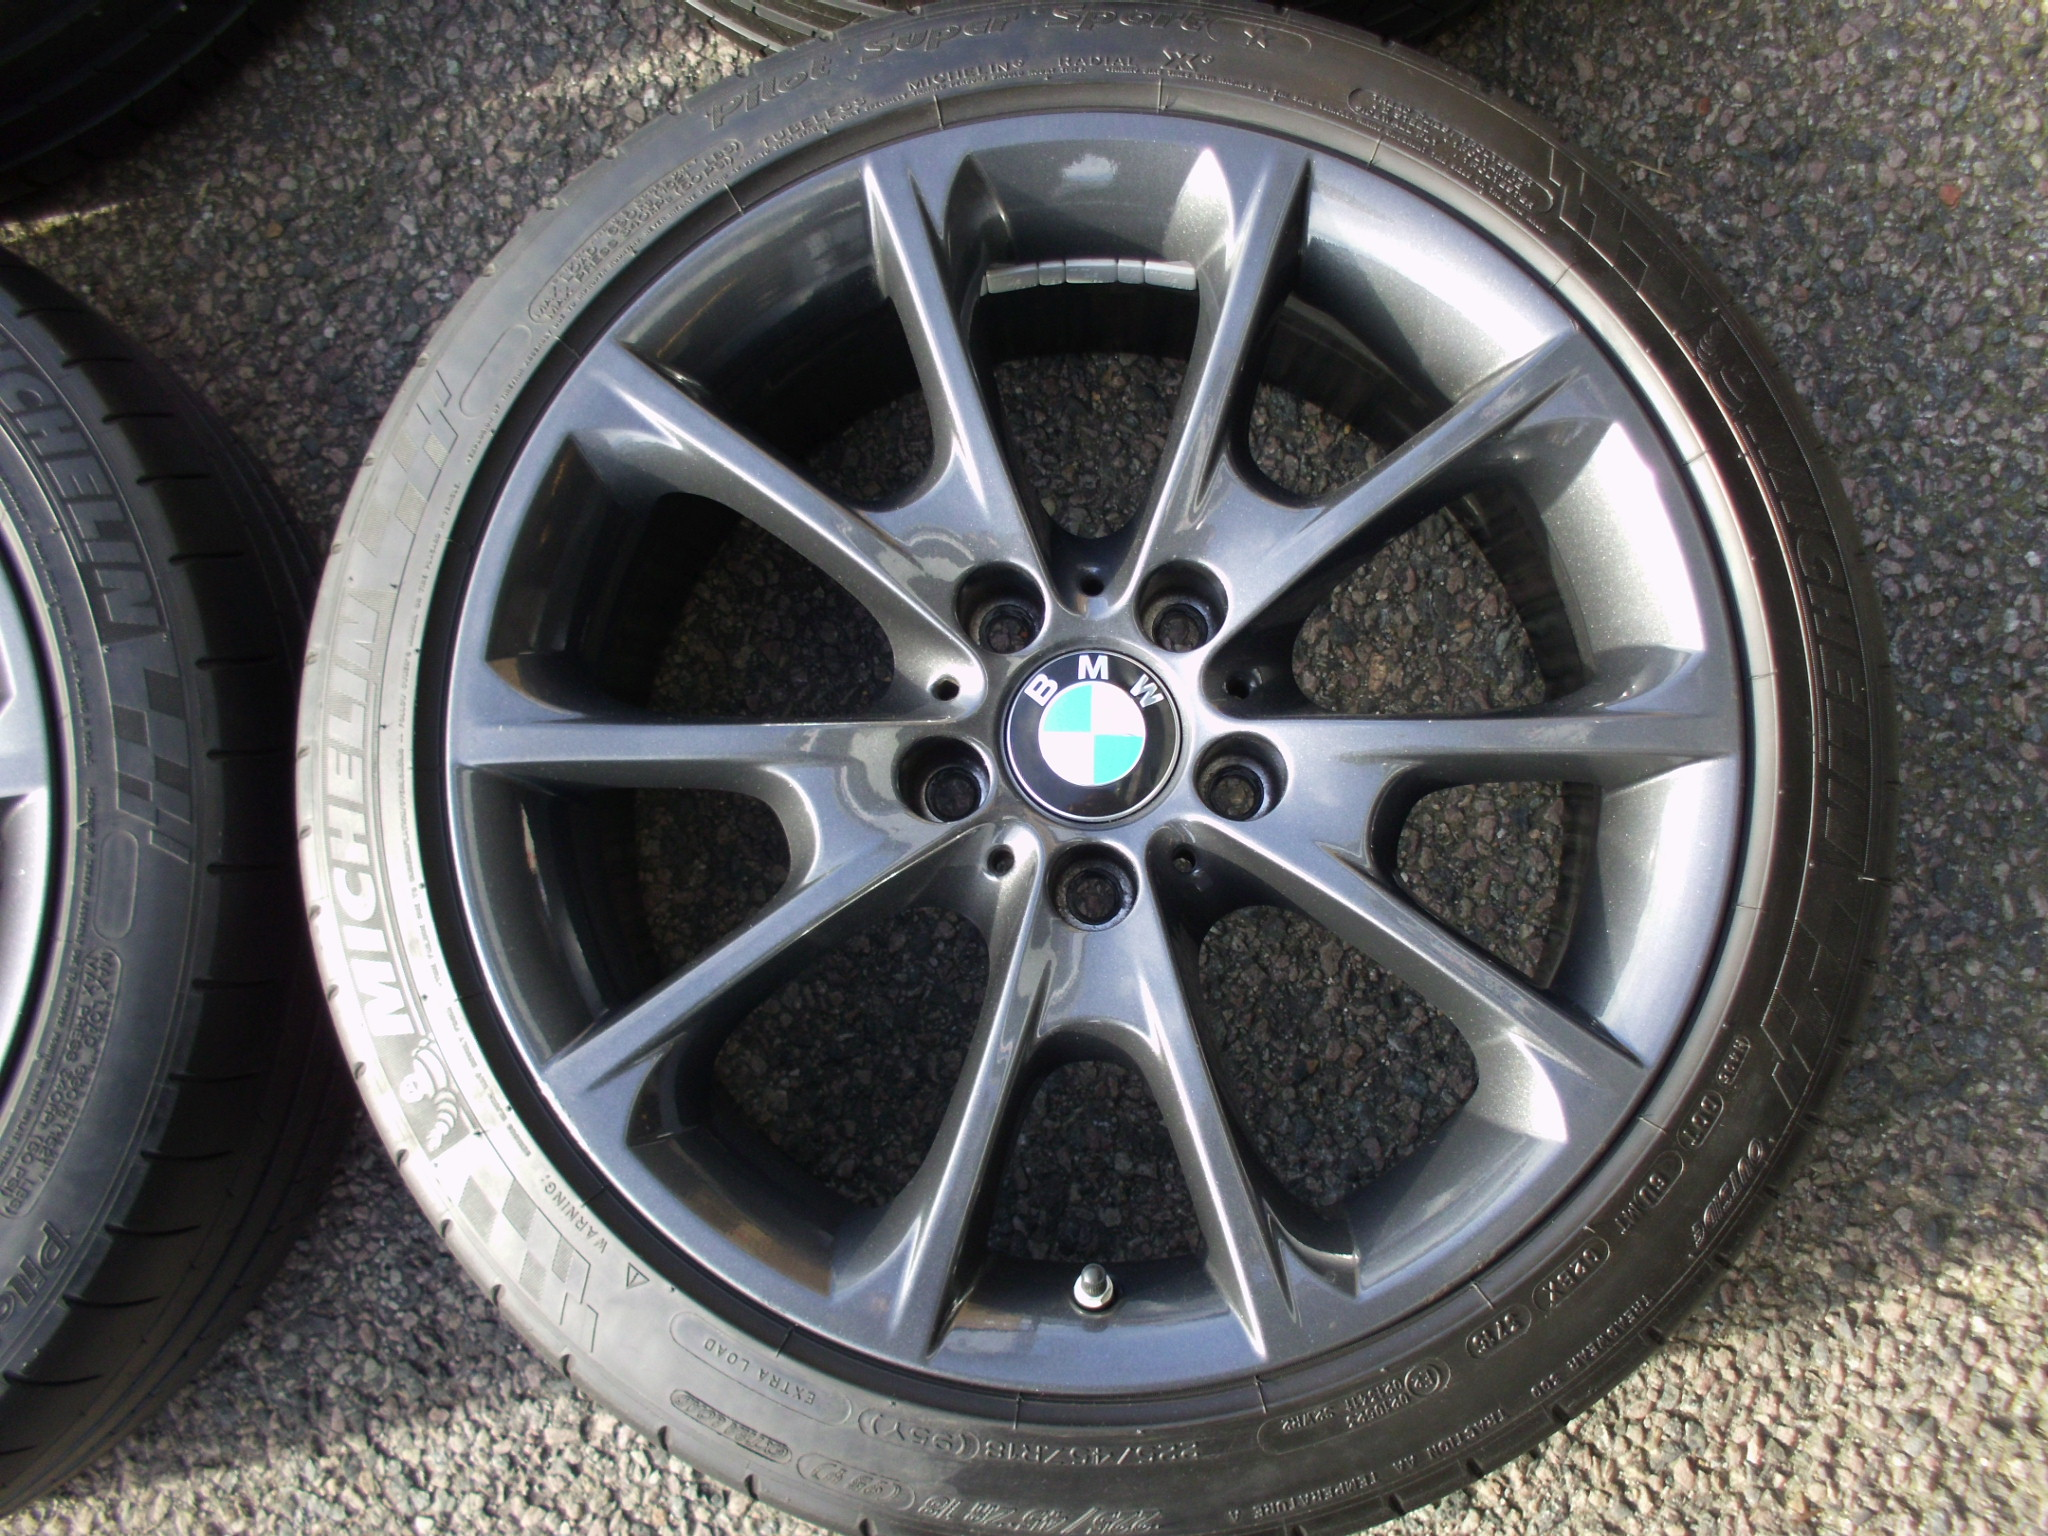 "USED 18"" GENUINE BMW STYLE 398 SPORT ALLOY WHEELS, ORBIT GREY, WIDER REARS, VGC CONDITION, INC VG TYRES + TPMS"